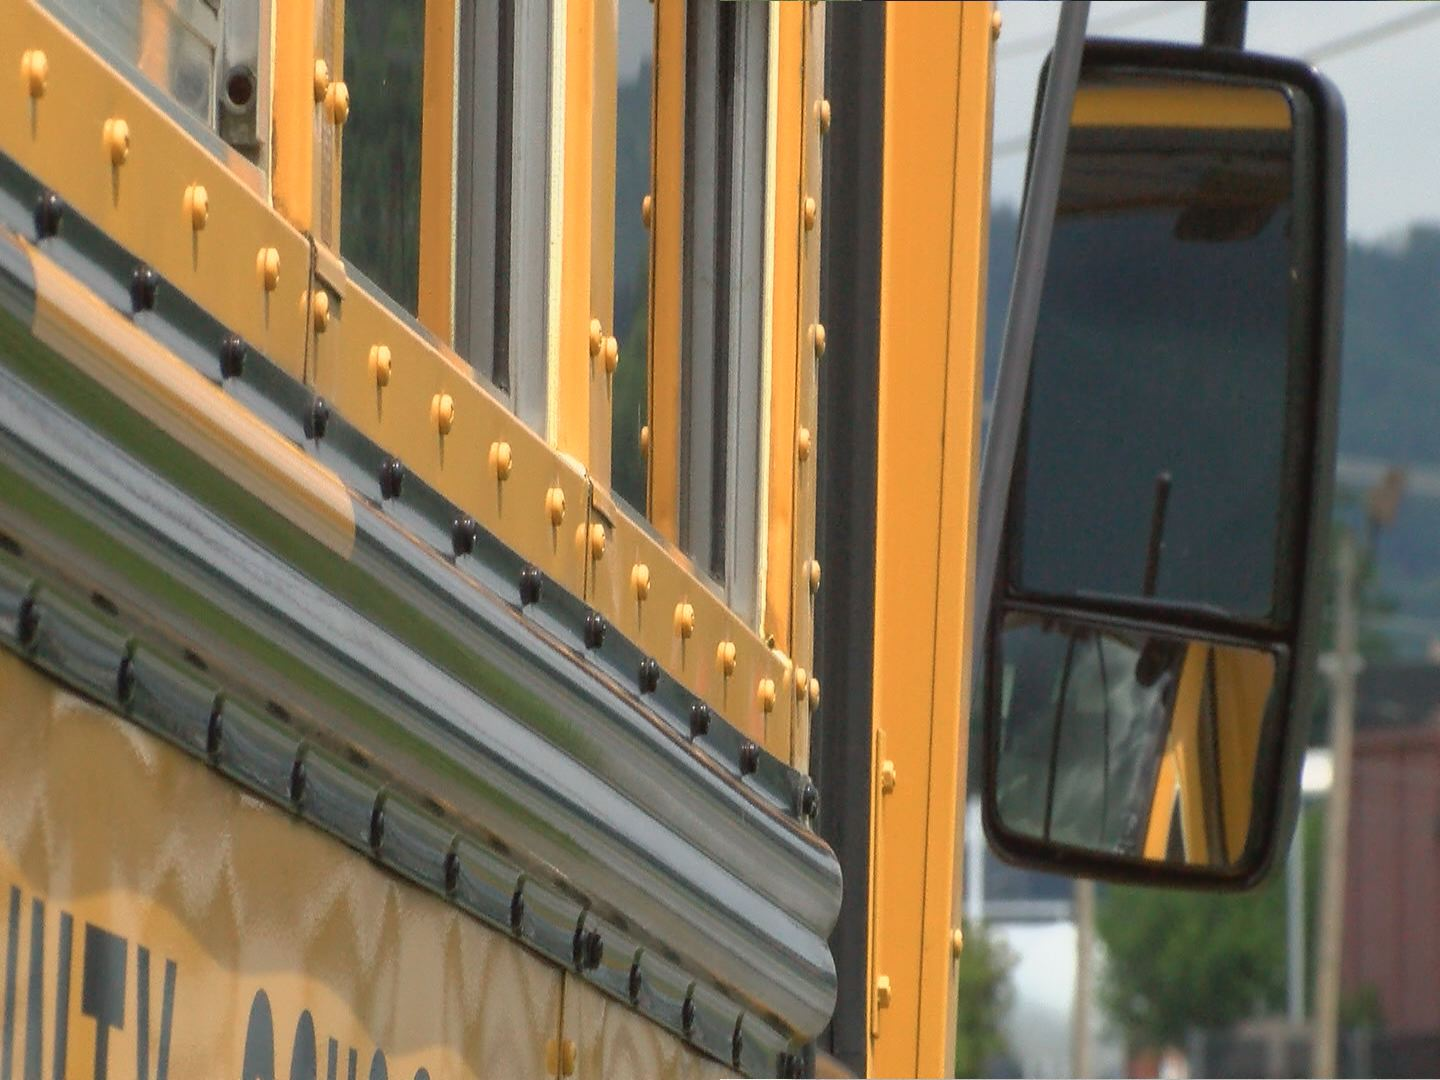 Carter County selling ads on school buses (Image 1)_12430